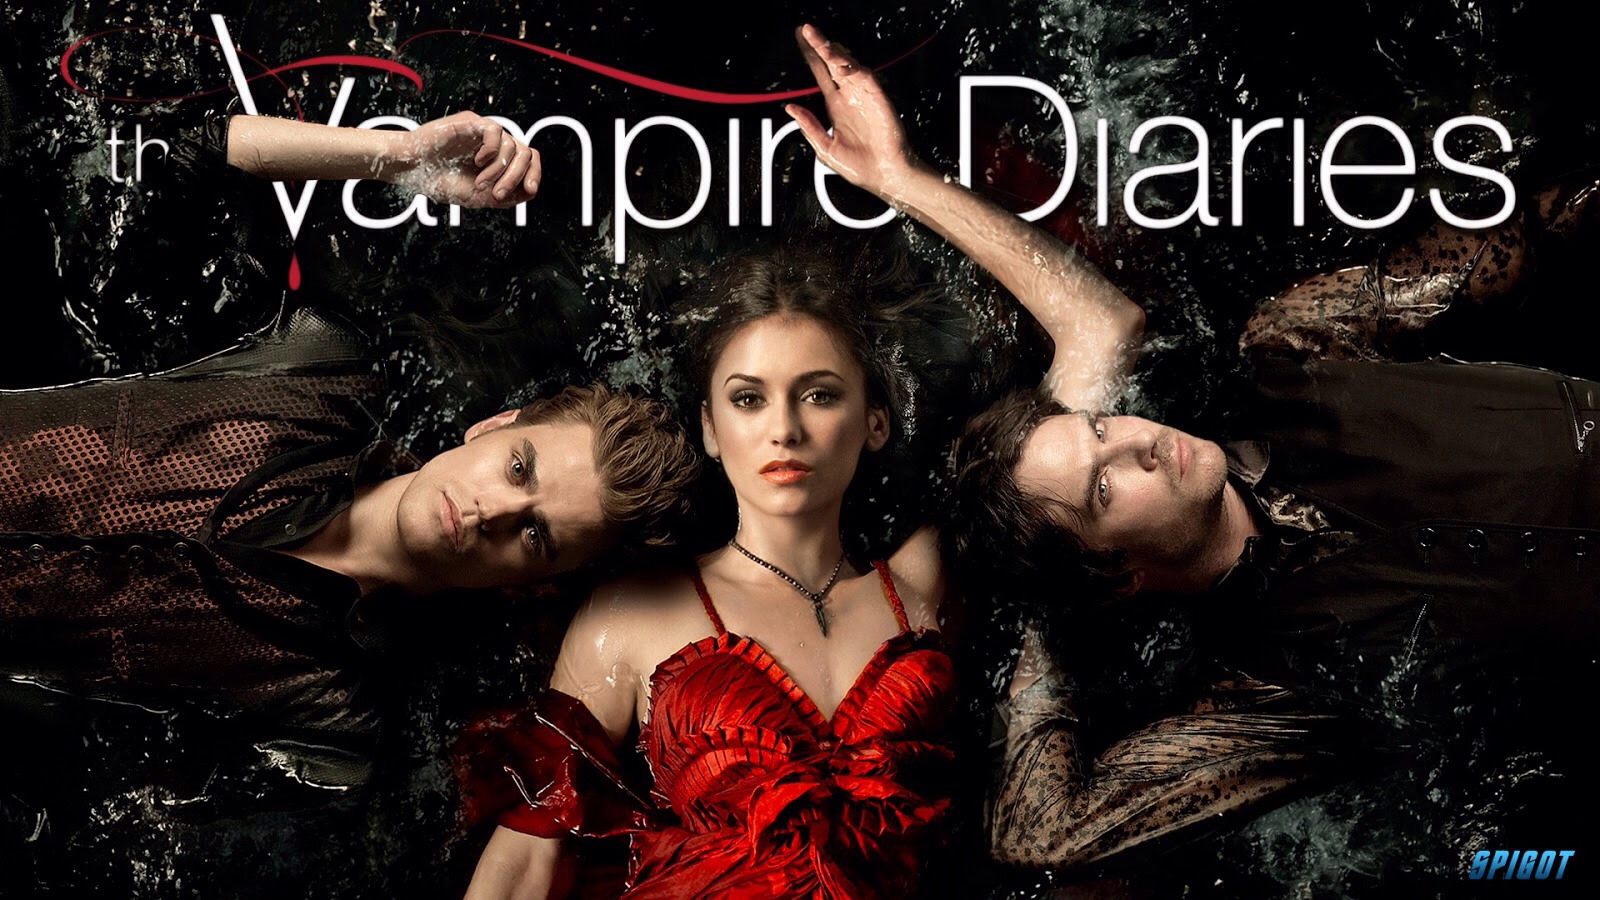 Vampire diaries 😍 cute guys and an action filled drama